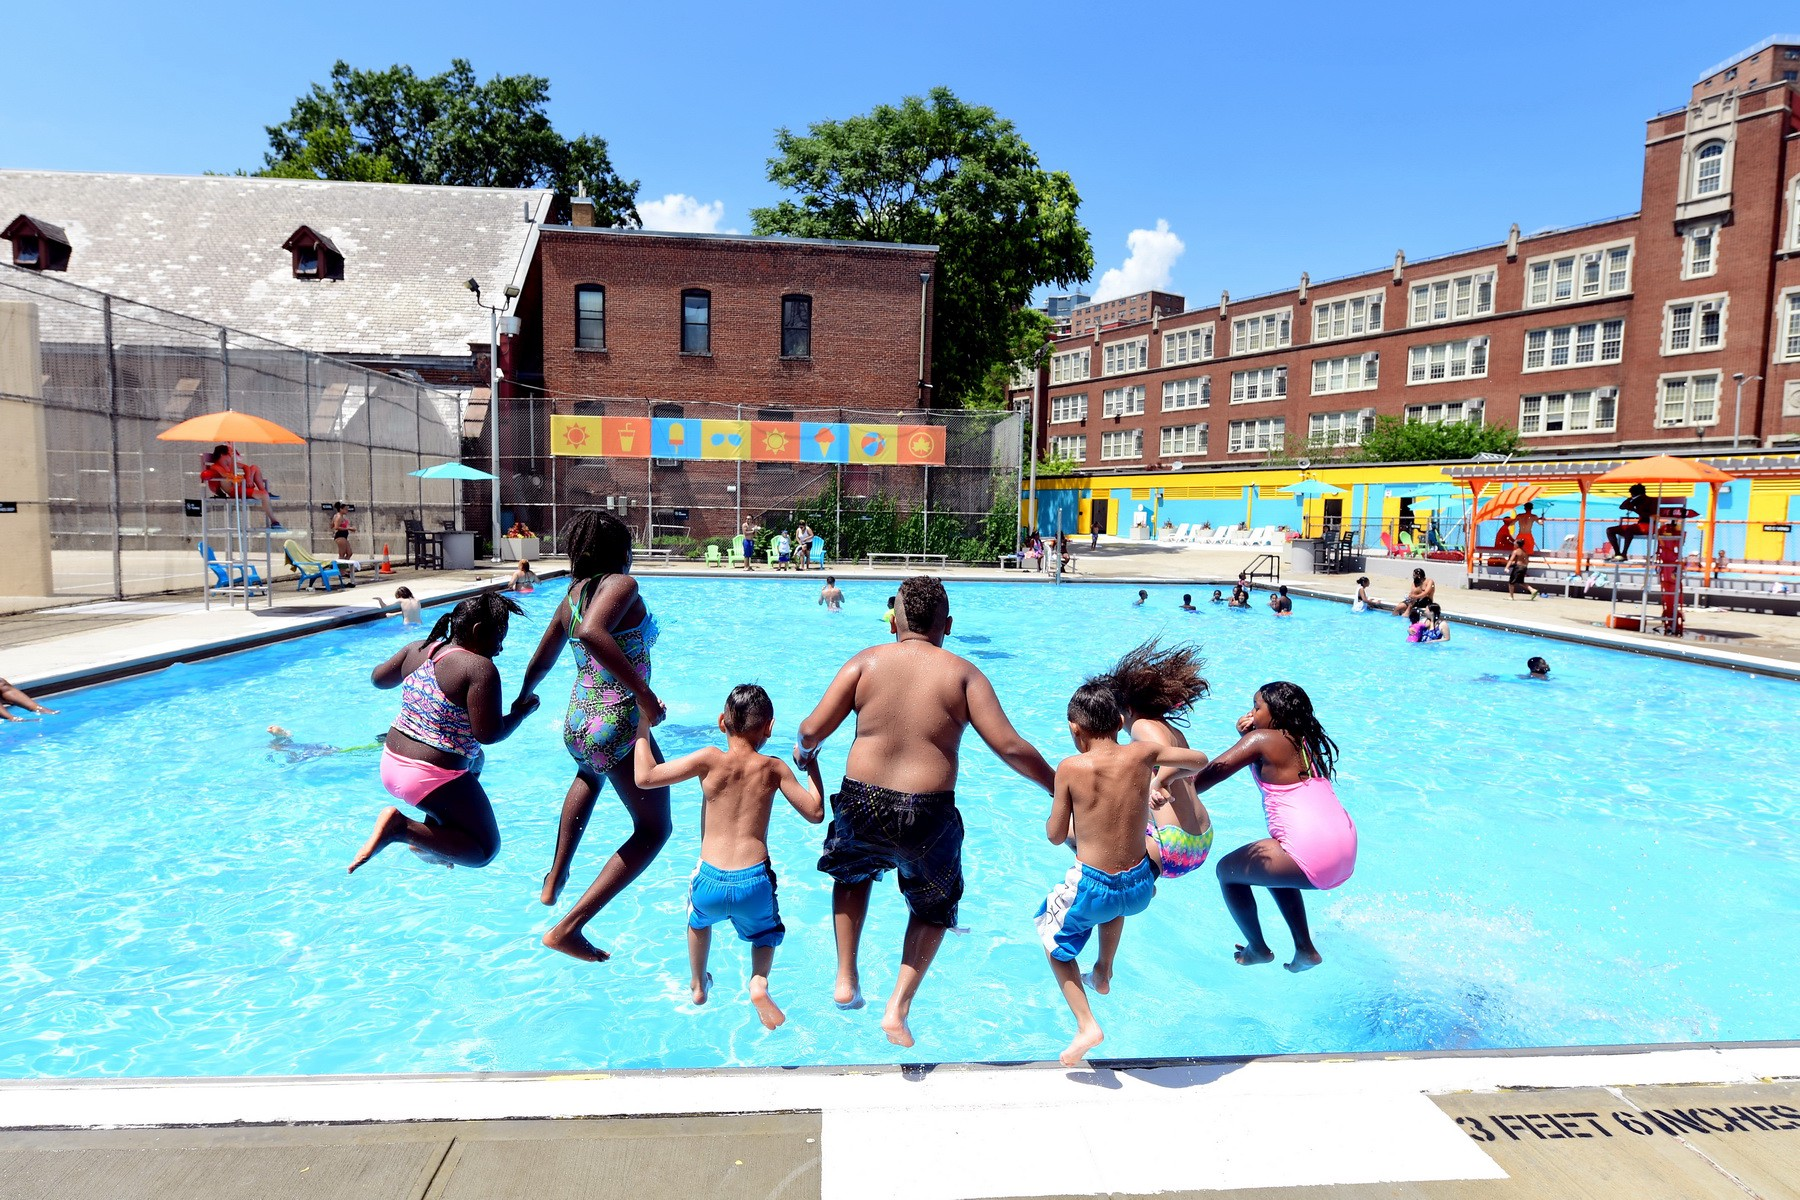 Cool Places to Cool Off: Realizing the Potential of Public Pools